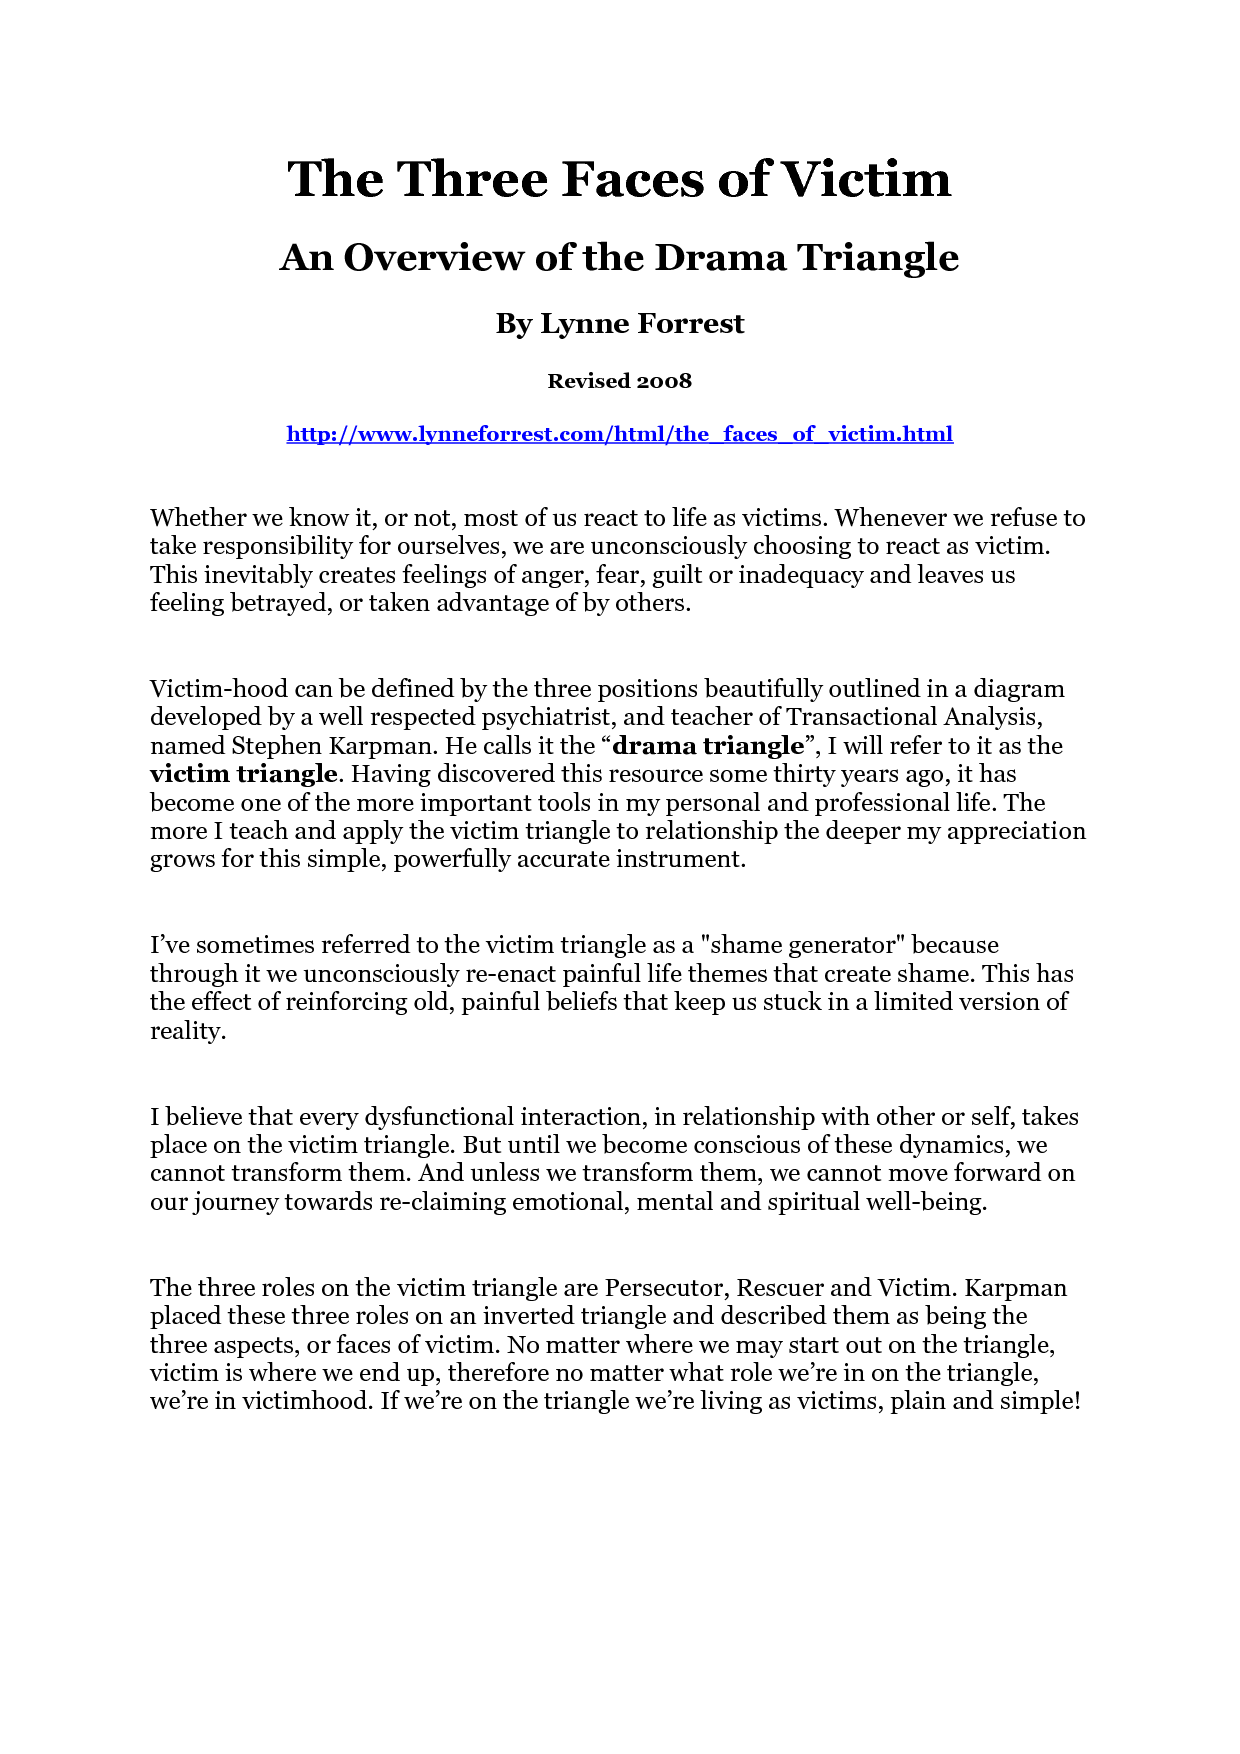 worksheet Drama Triangle Worksheet drama triangle pinterest triangles and counselling triangle